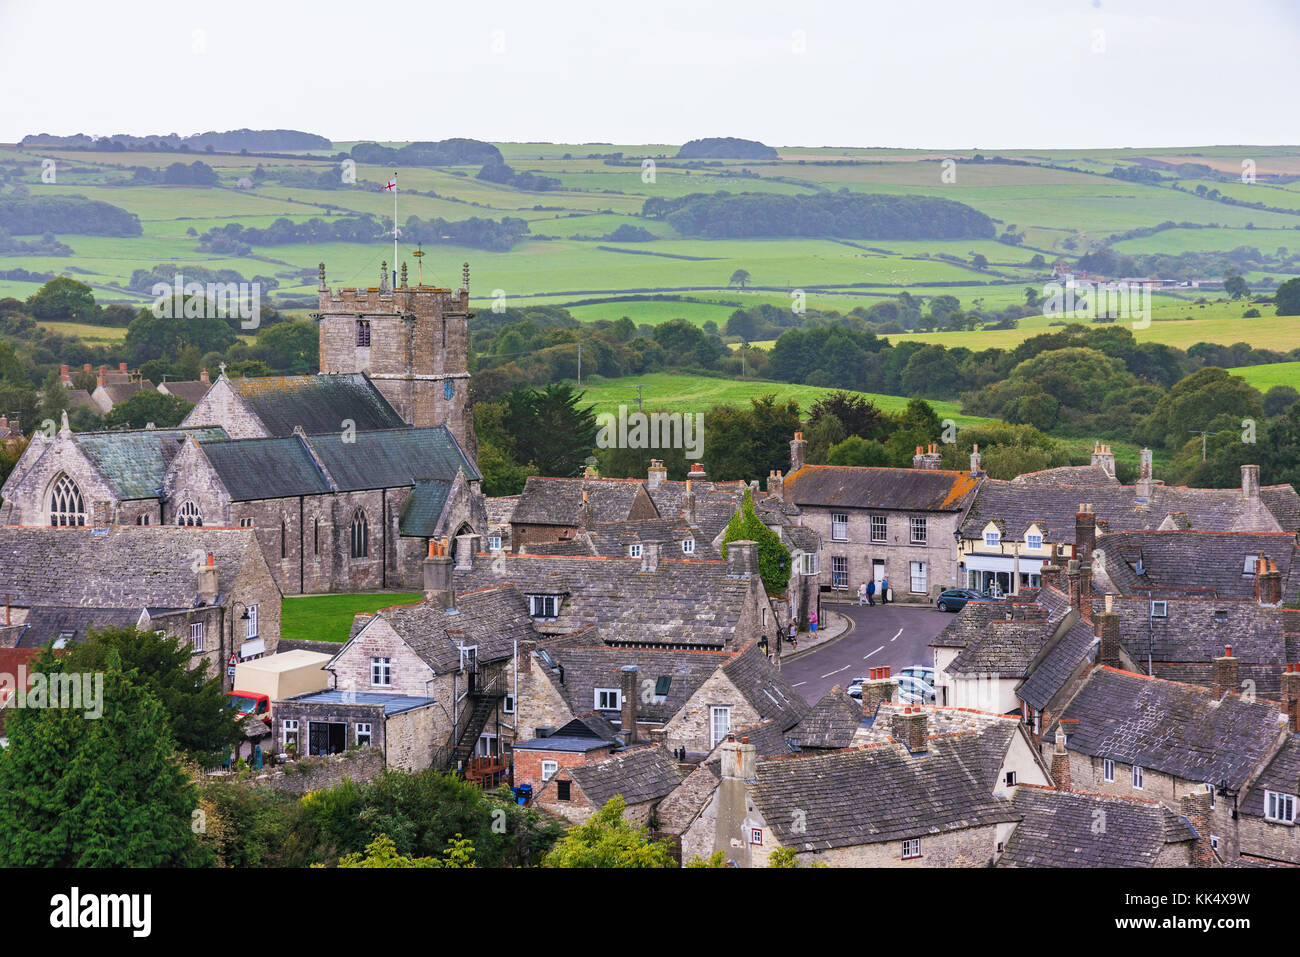 Corfe medieval village traditional British architecture - Stock Image